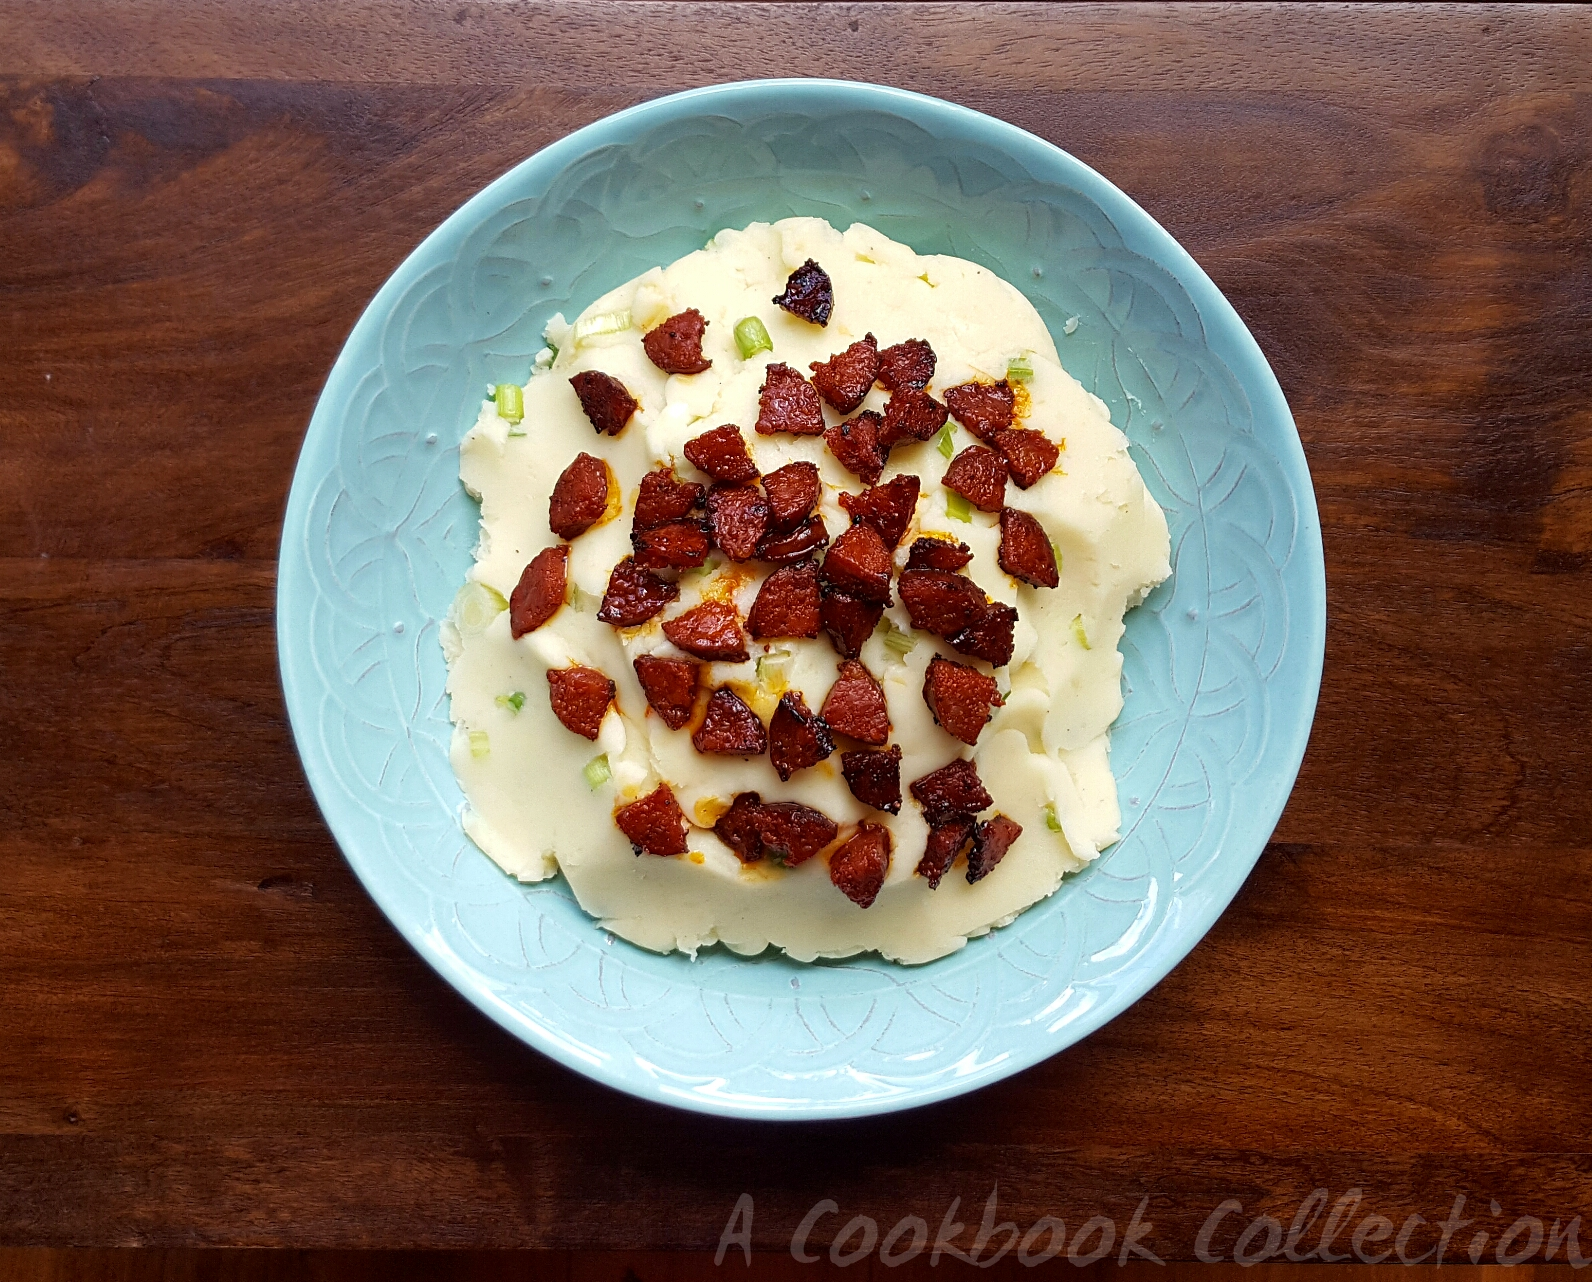 Creamy Mashed Potato and Chorizo Salad- A Cookbook Collection